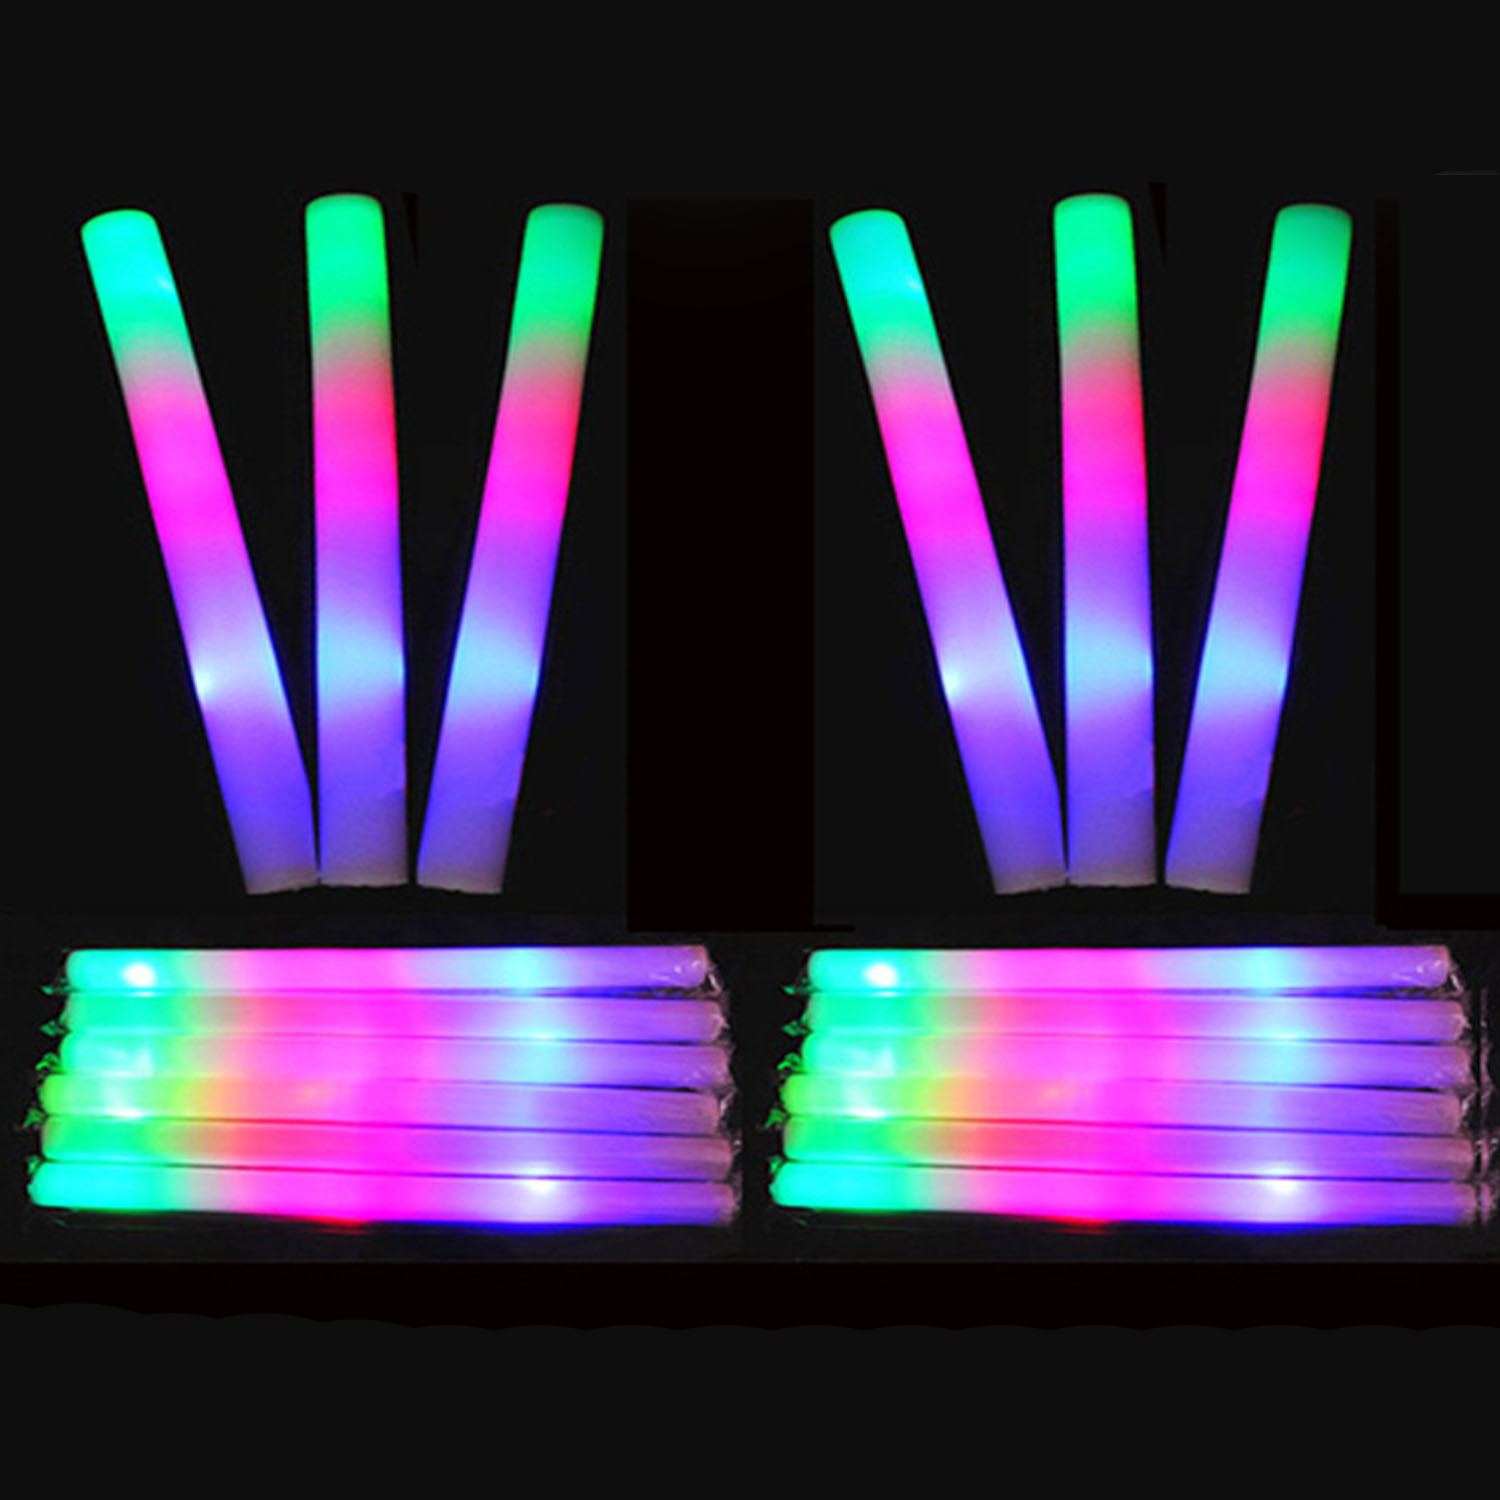 Led Glow Sticks Us 10 33 30 Off Behogar 24 Pcs Led Colorful Concert Party Club Cheer Sponge Glowsticks Glow Sticks For Concert Christmas Party Accessories In Glow